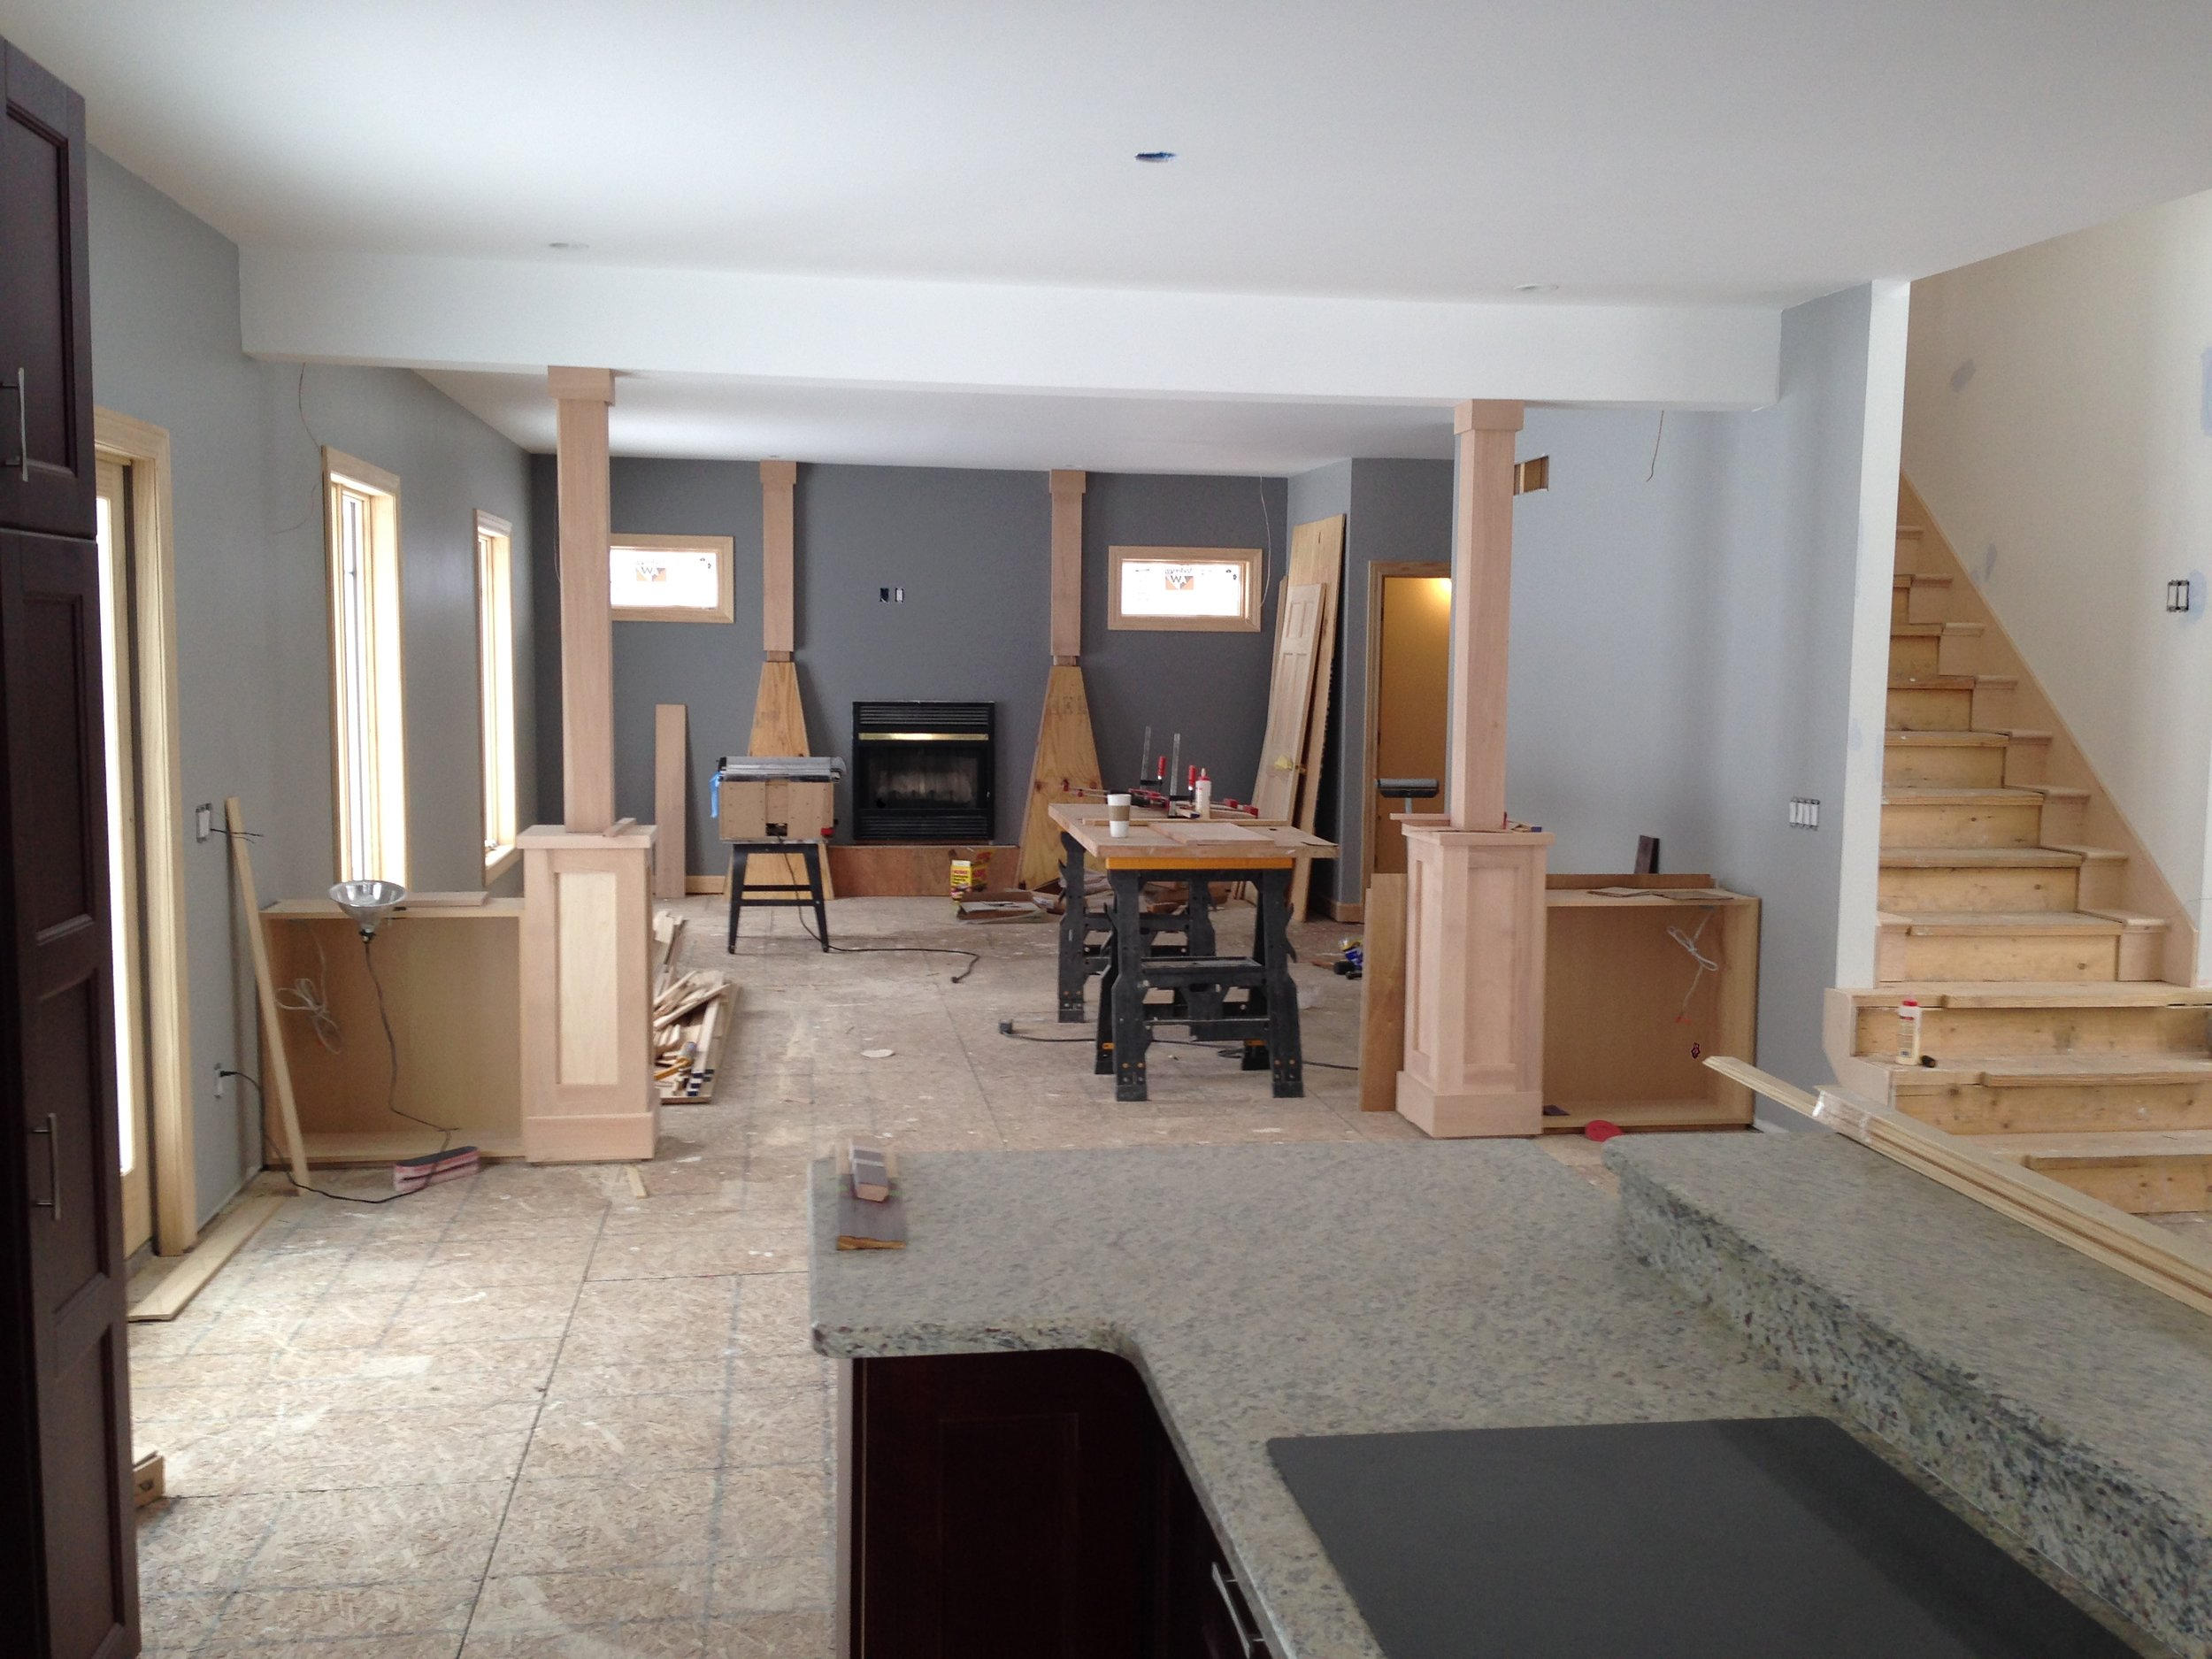 Basement Construction - Brighton Residence 2